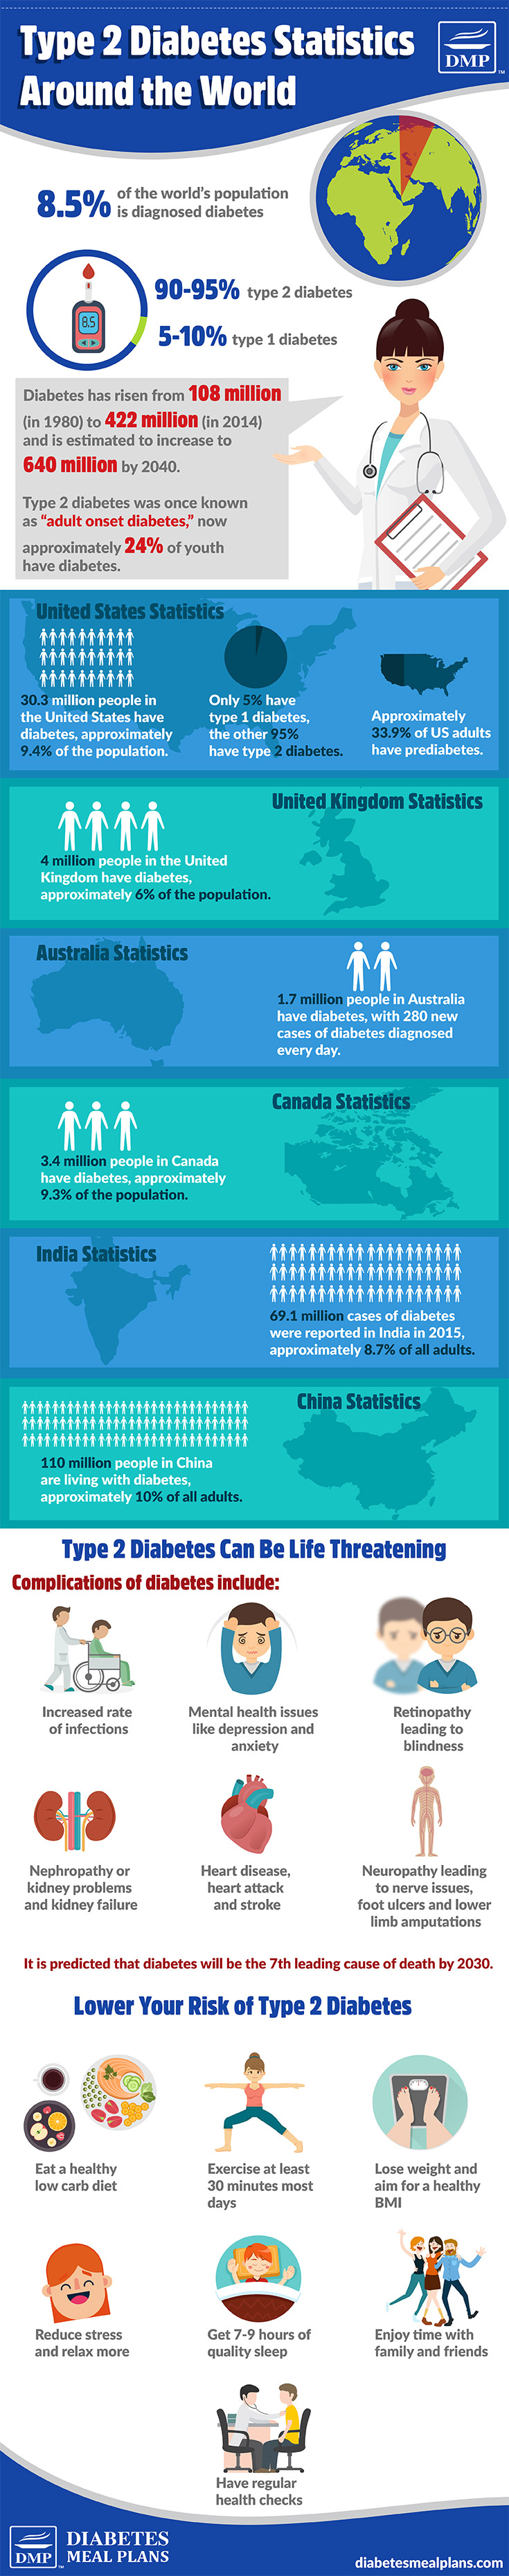 Type 2 Diabetes Statistics Worldwide Infographic - please share!